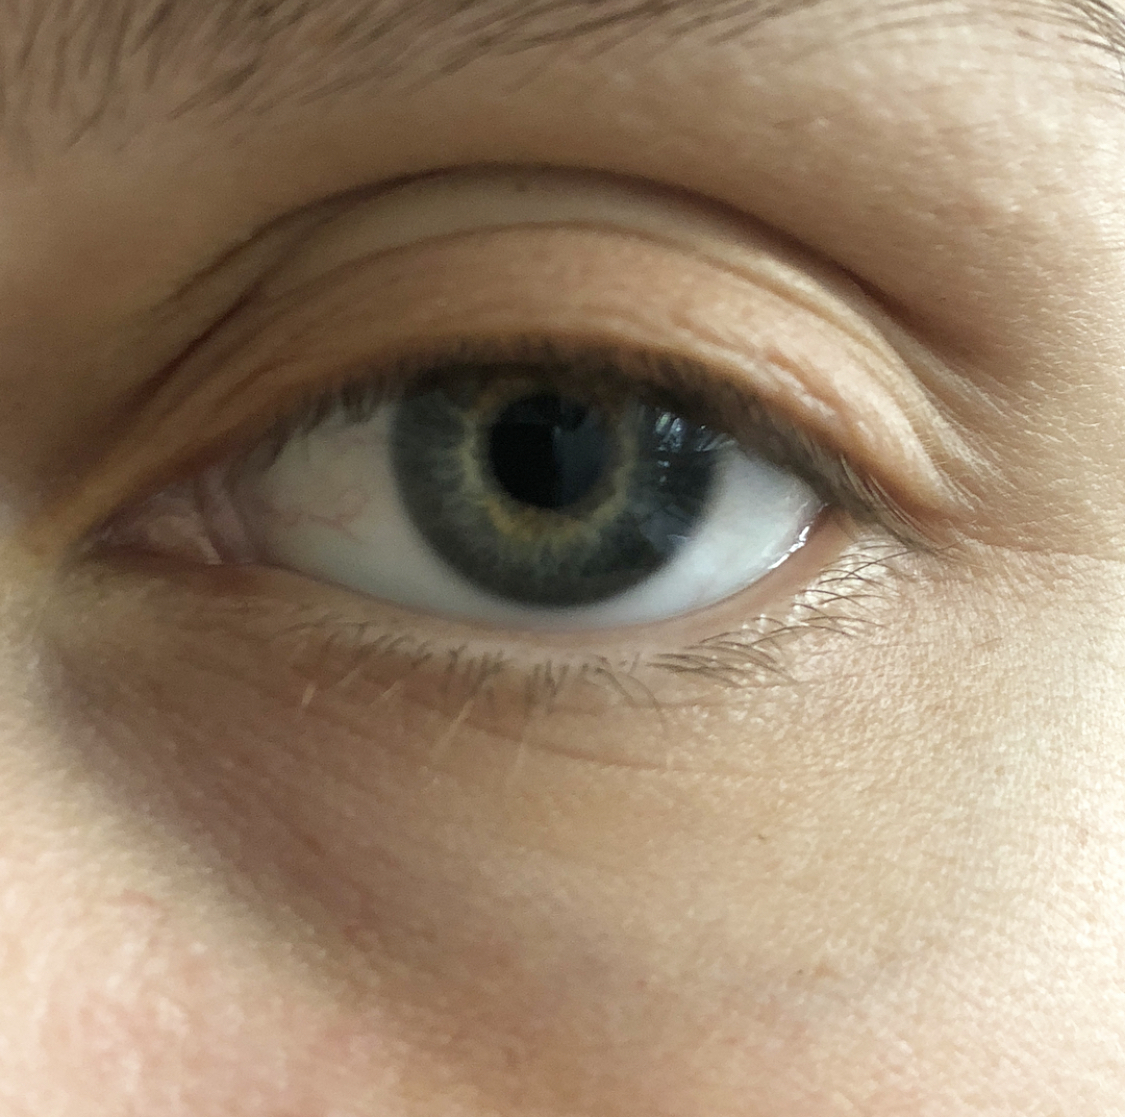 This strip was noticeable on the eyelid although it did provide a lift - Contours Rx®